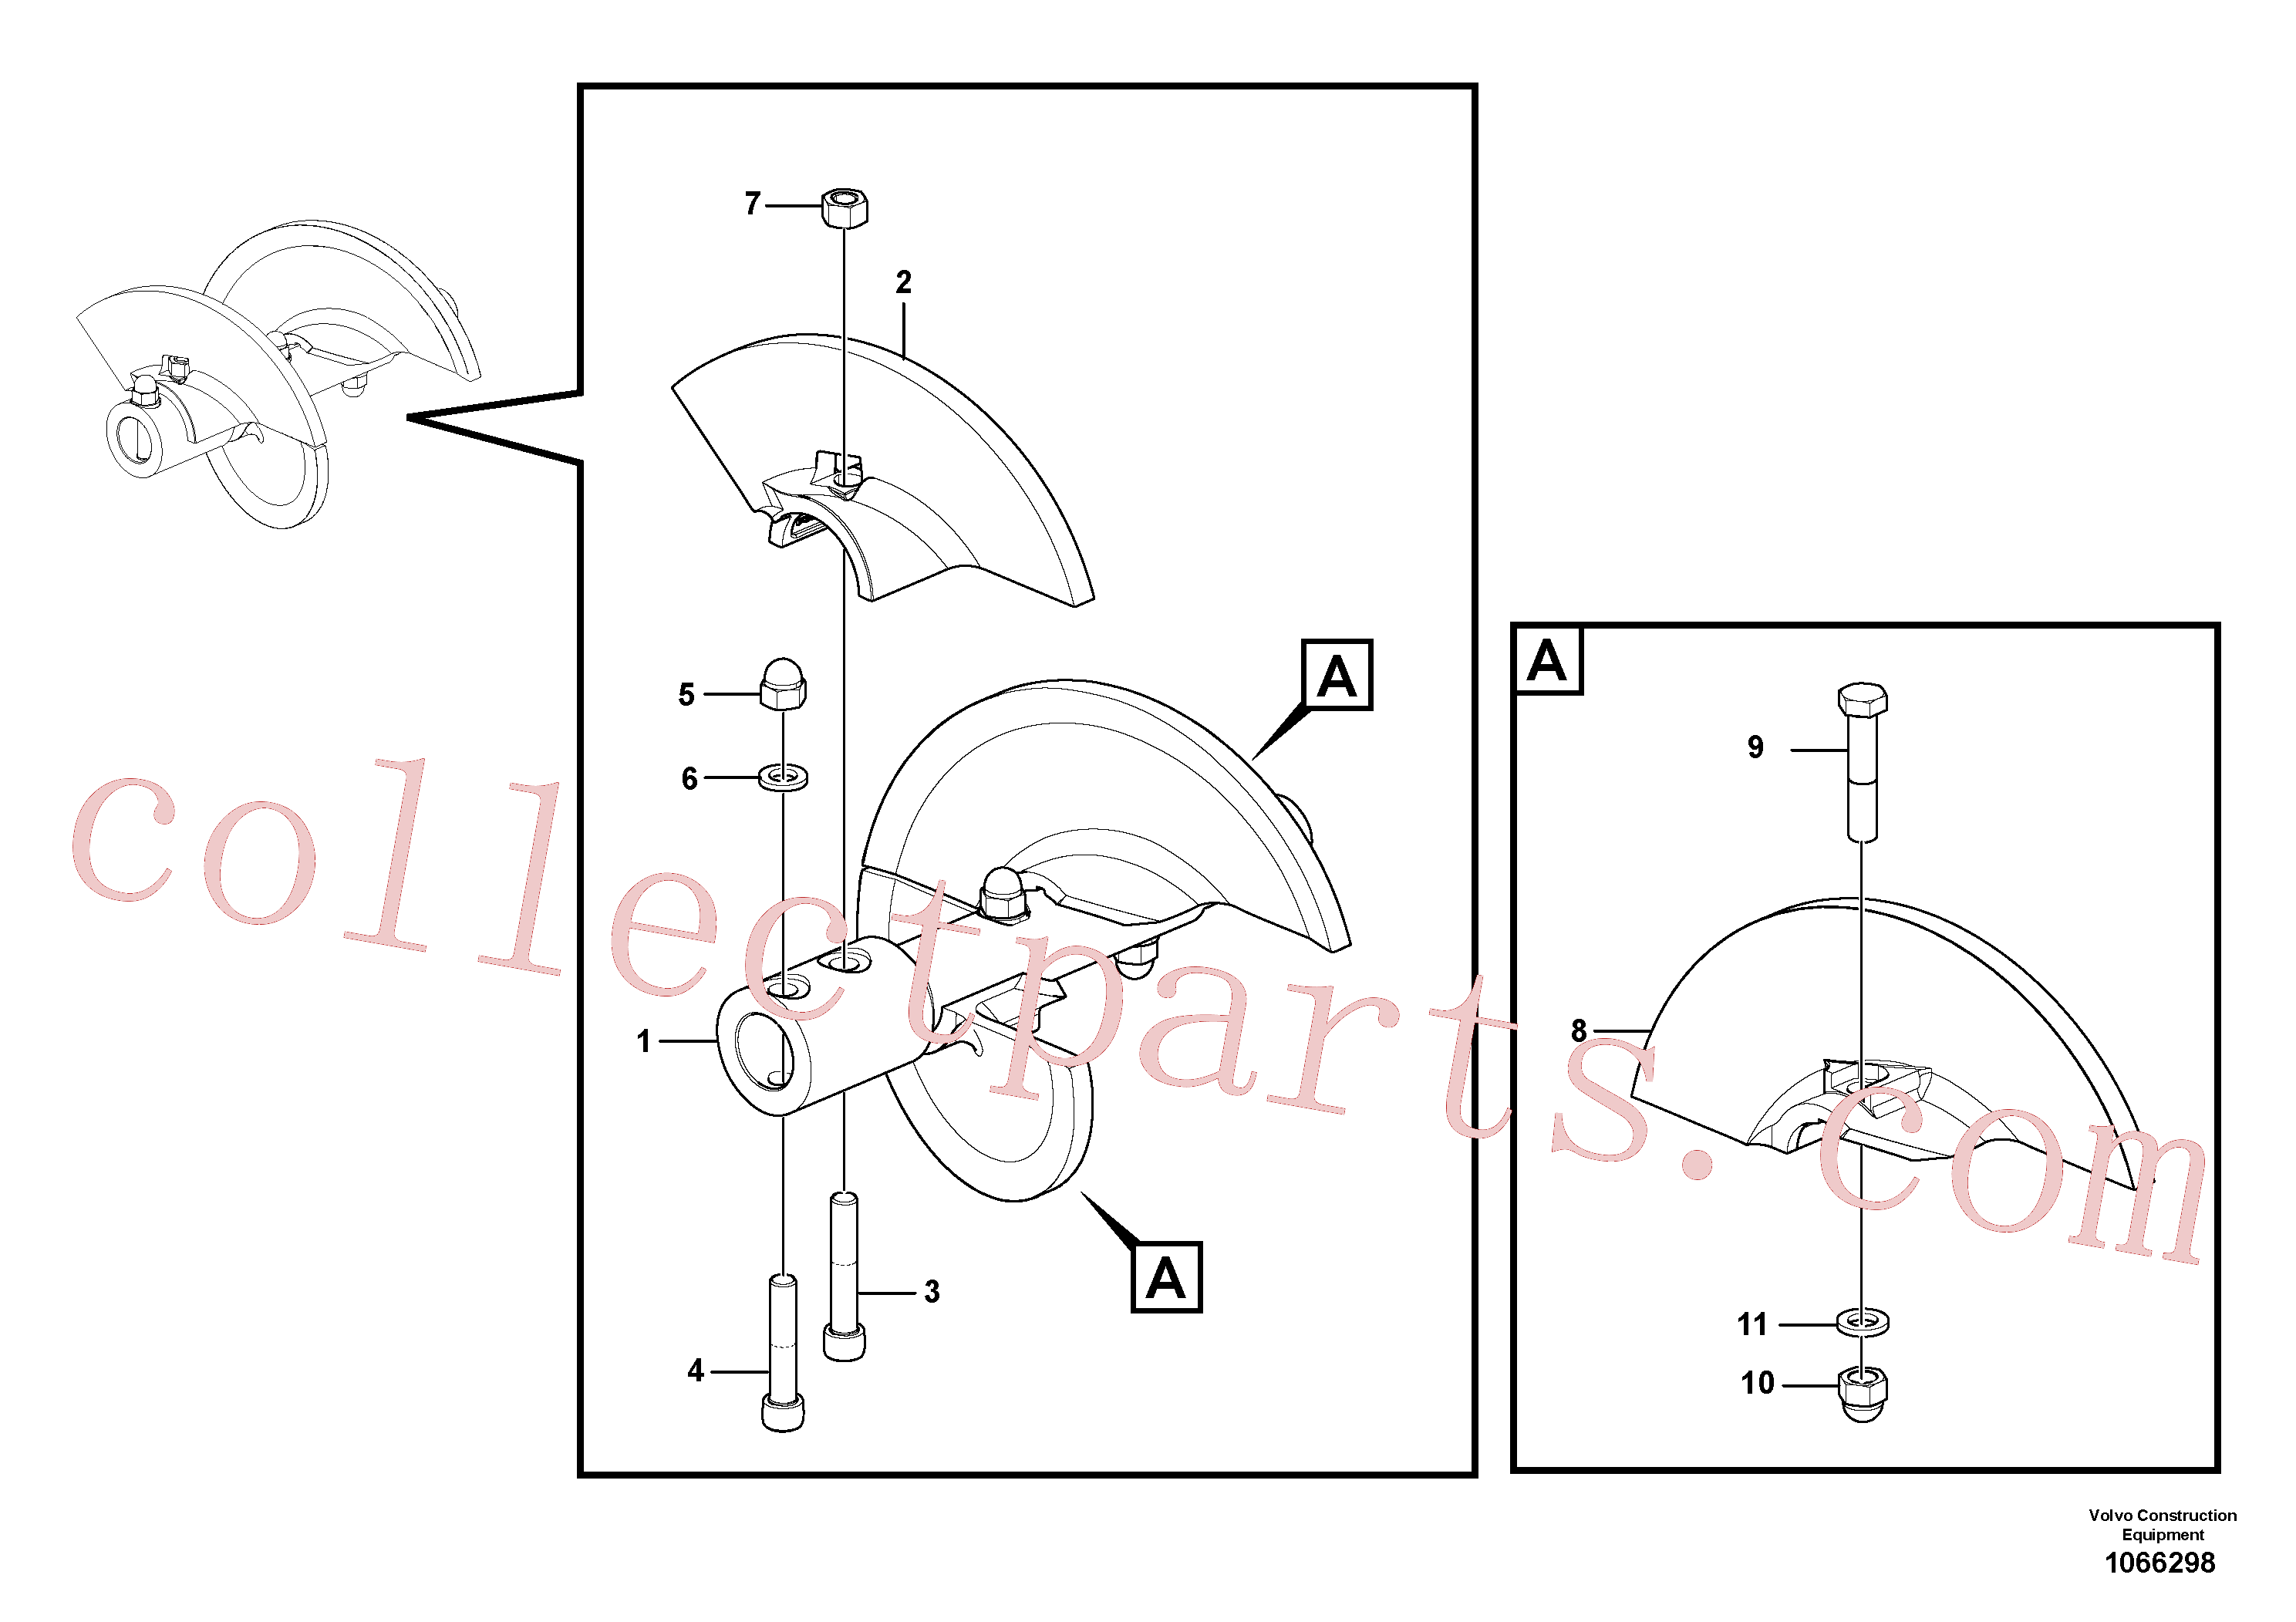 RM58832635 for Volvo Auger extension 442(1066298 assembly)